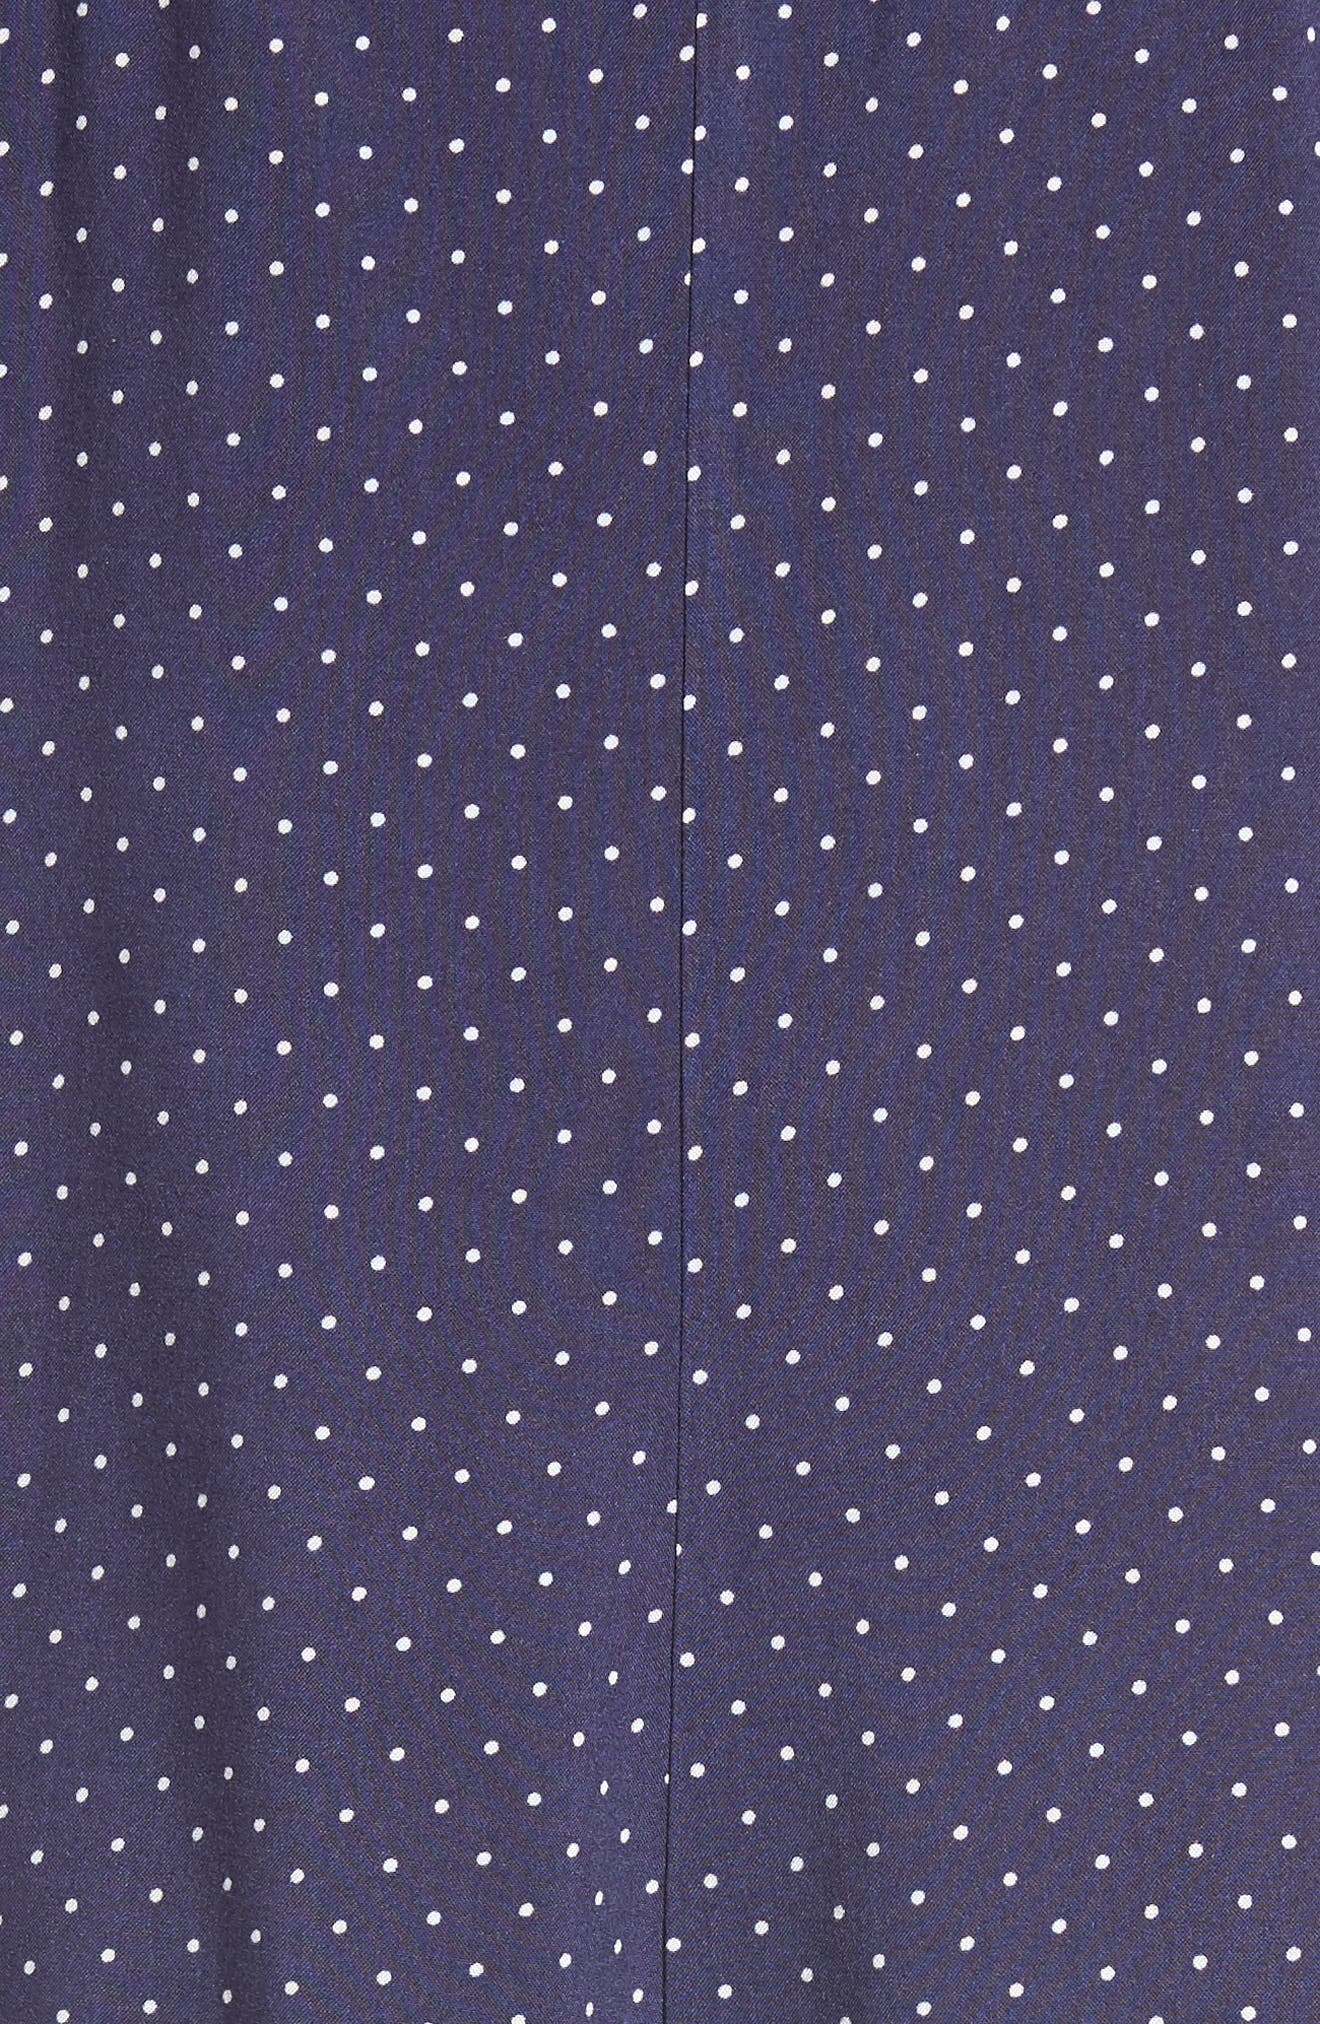 Button Front Dress,                             Alternate thumbnail 6, color,                             Navy Polka Dot